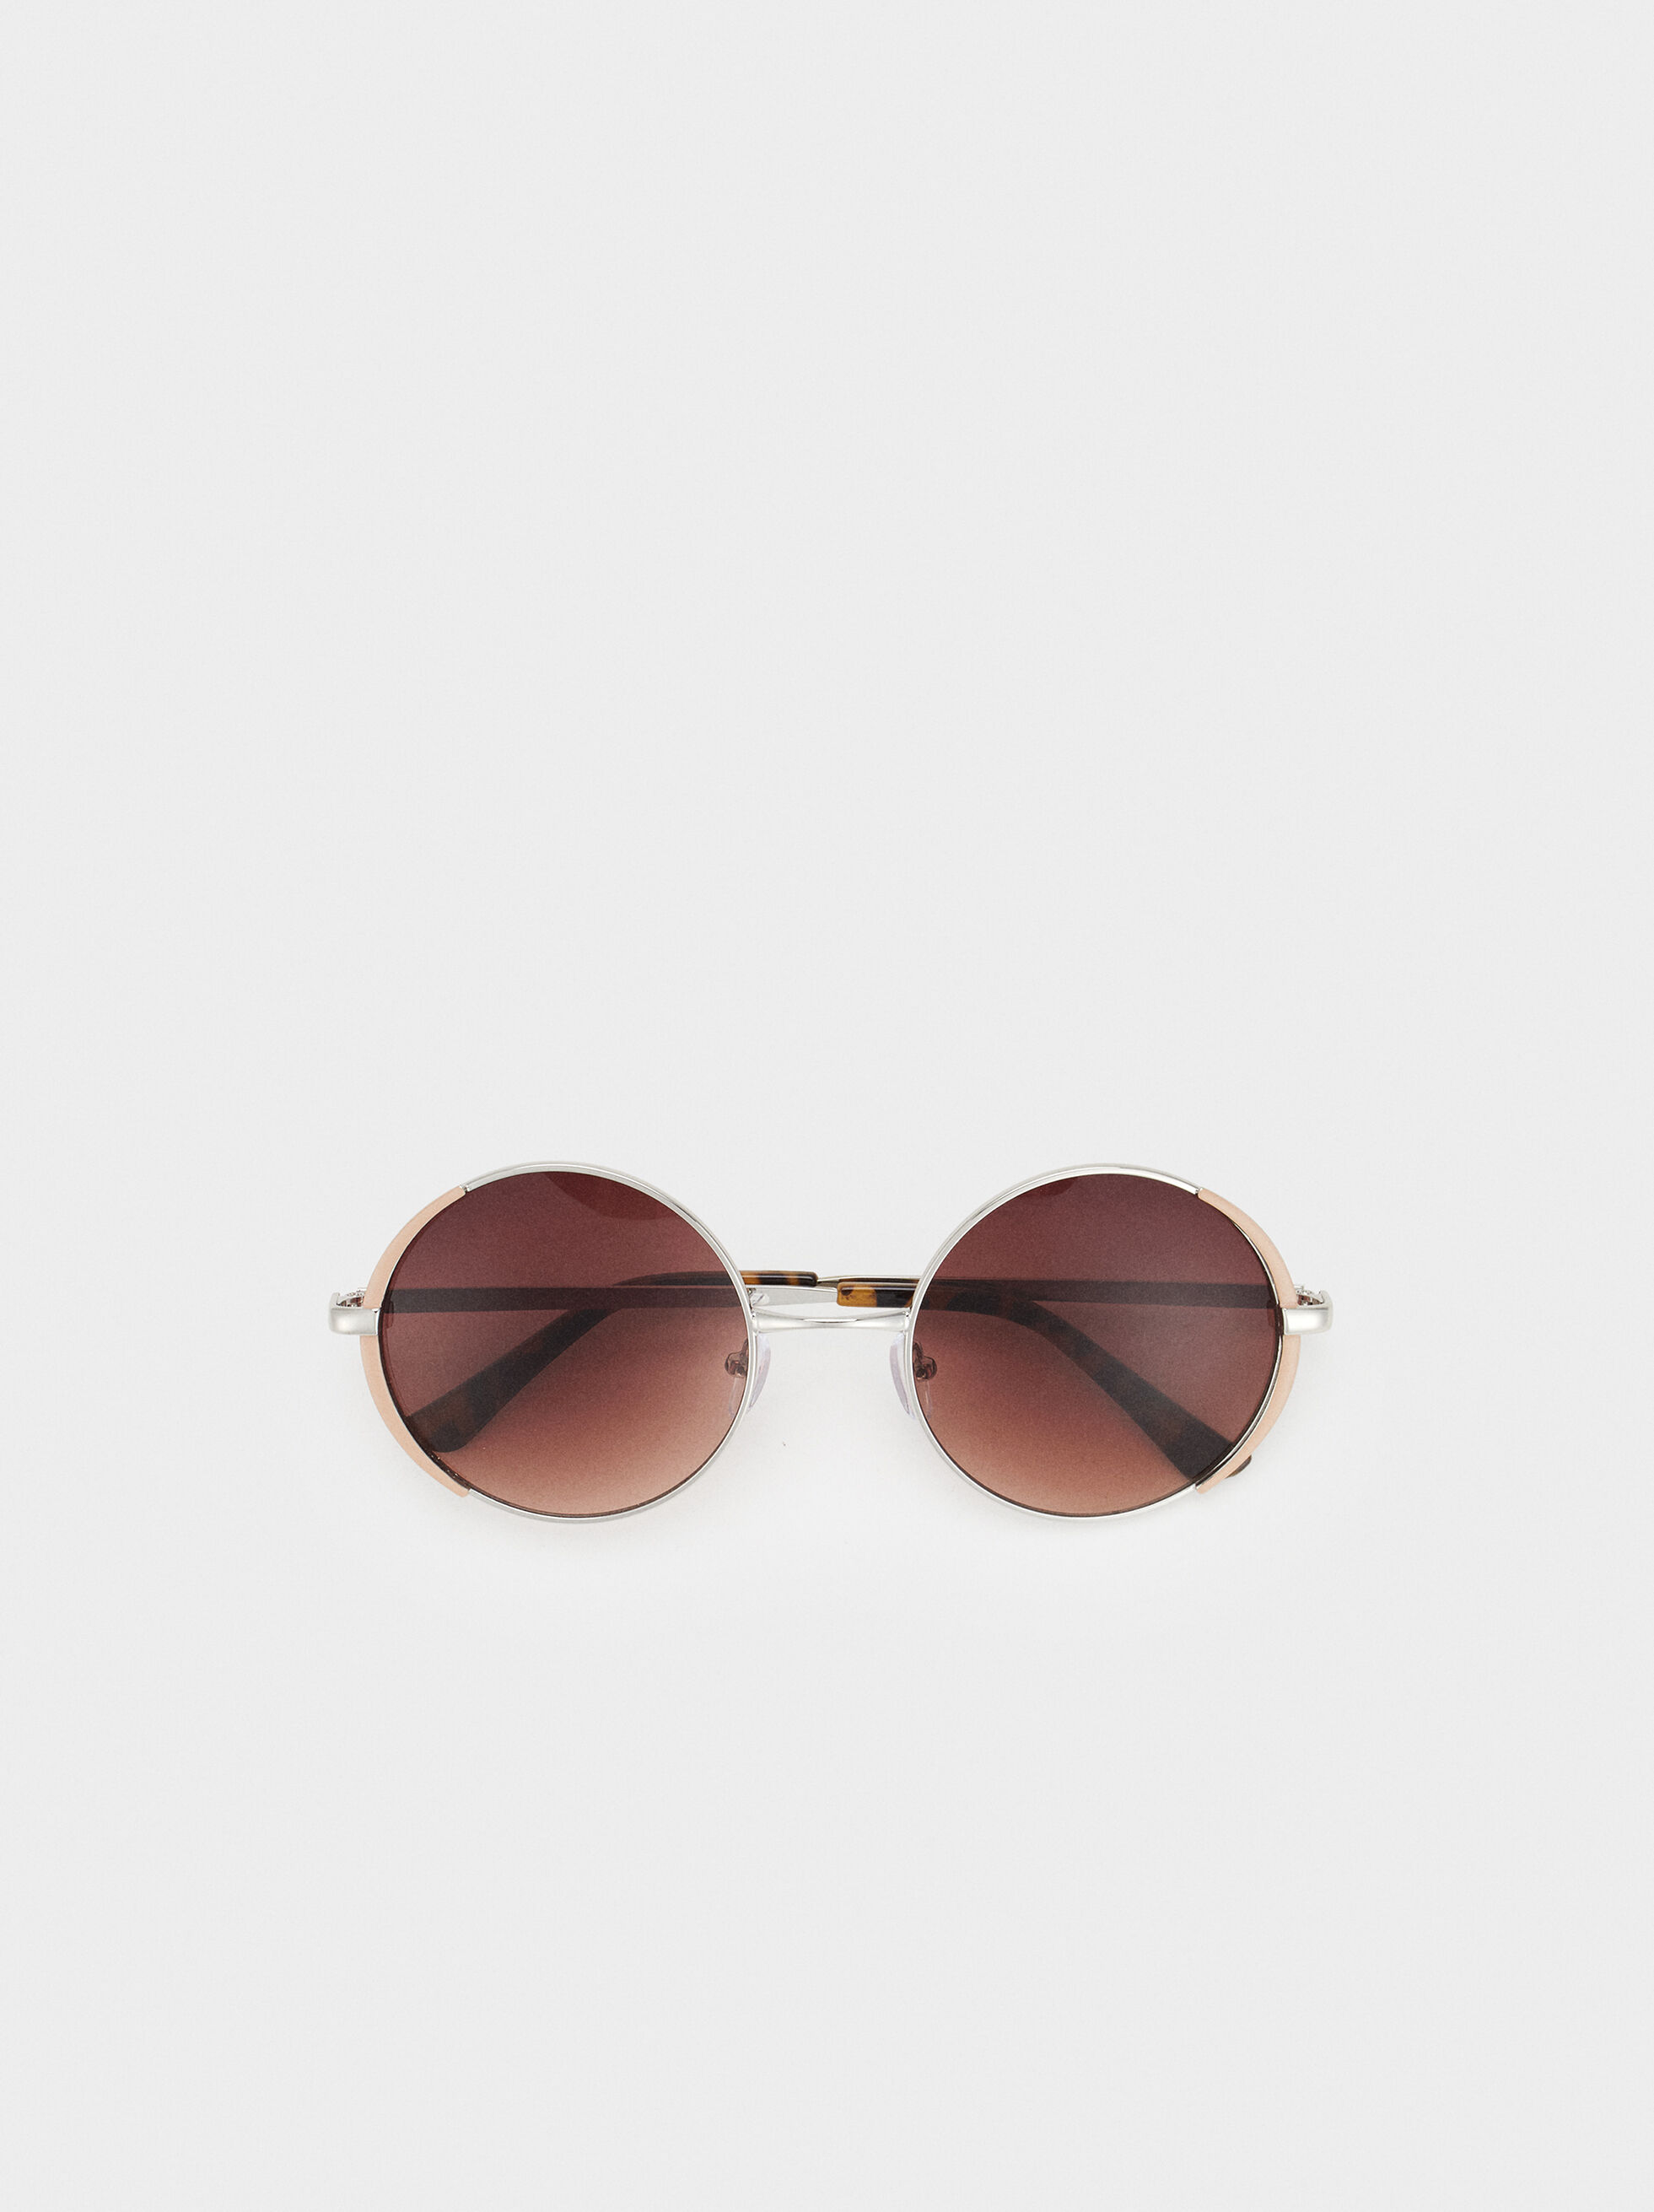 Round Metal Sunglasses, Pink, hi-res